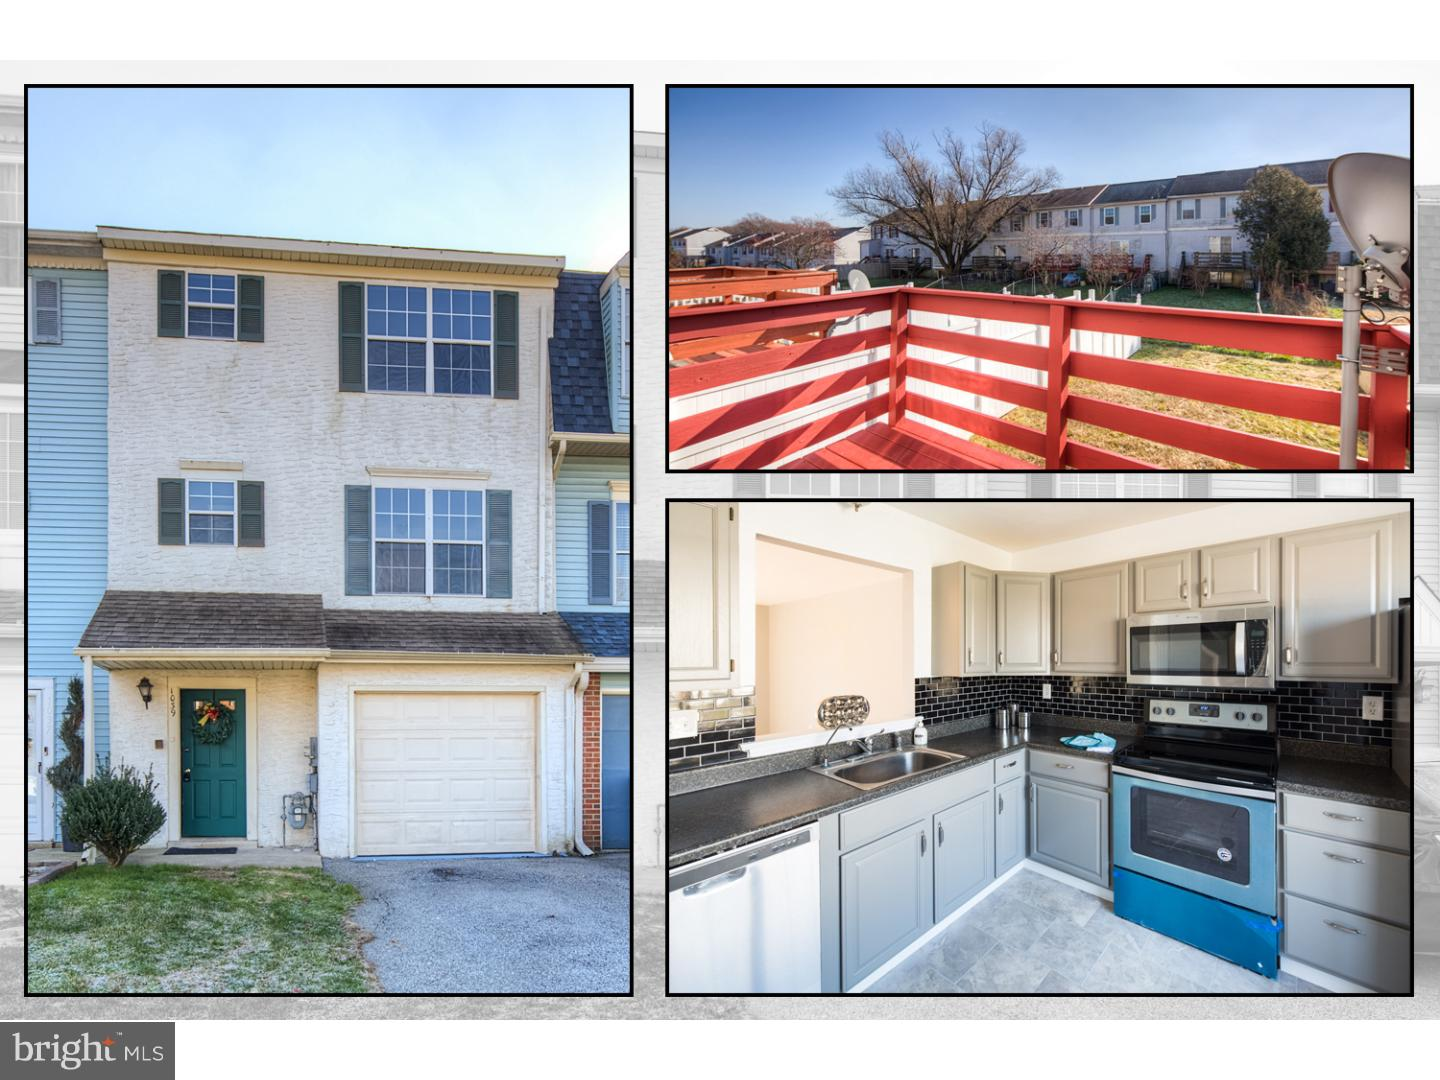 This meticulous 3 bedrooms 1/1 bath townhouse with 1 car garage in New Castle has been prepared for